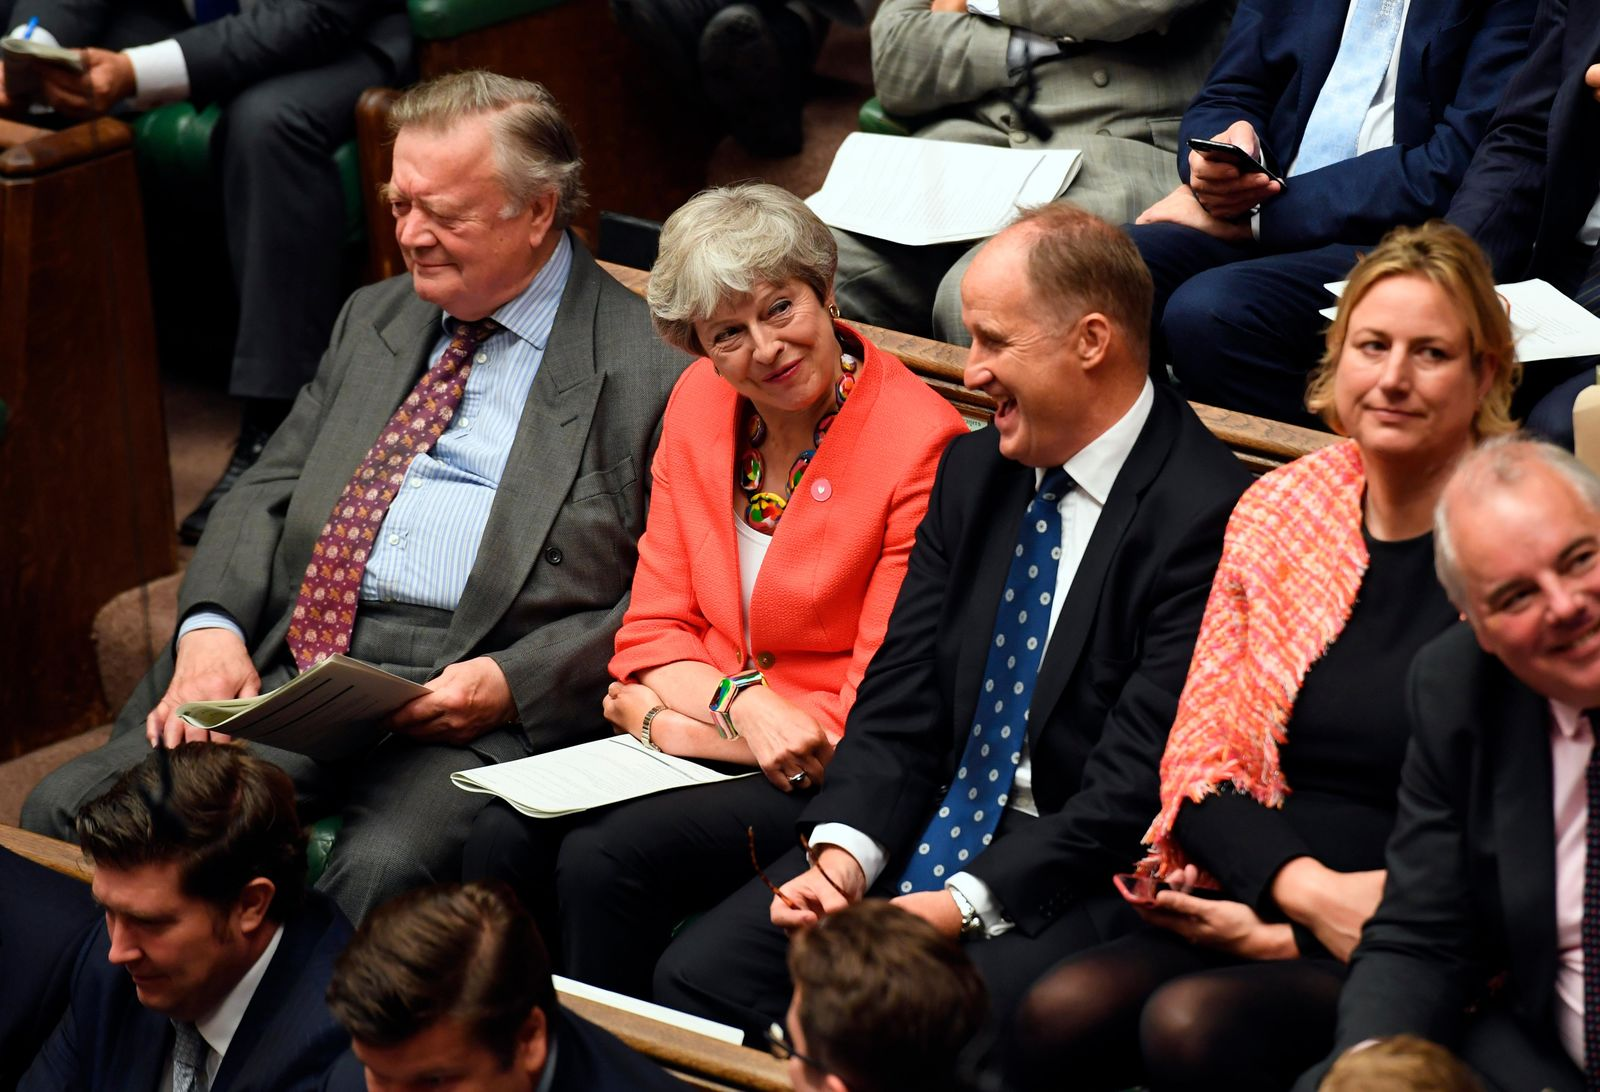 In this handout photo provided by the House of Commons, former Prime Minister Theresa May, second left, looks on during Boris Johnson's first Prime Minister's Questions, in the House of Commons in London, Wednesday, Sept. 4, 2019. (Jessica Taylor/House of Commons via AP)